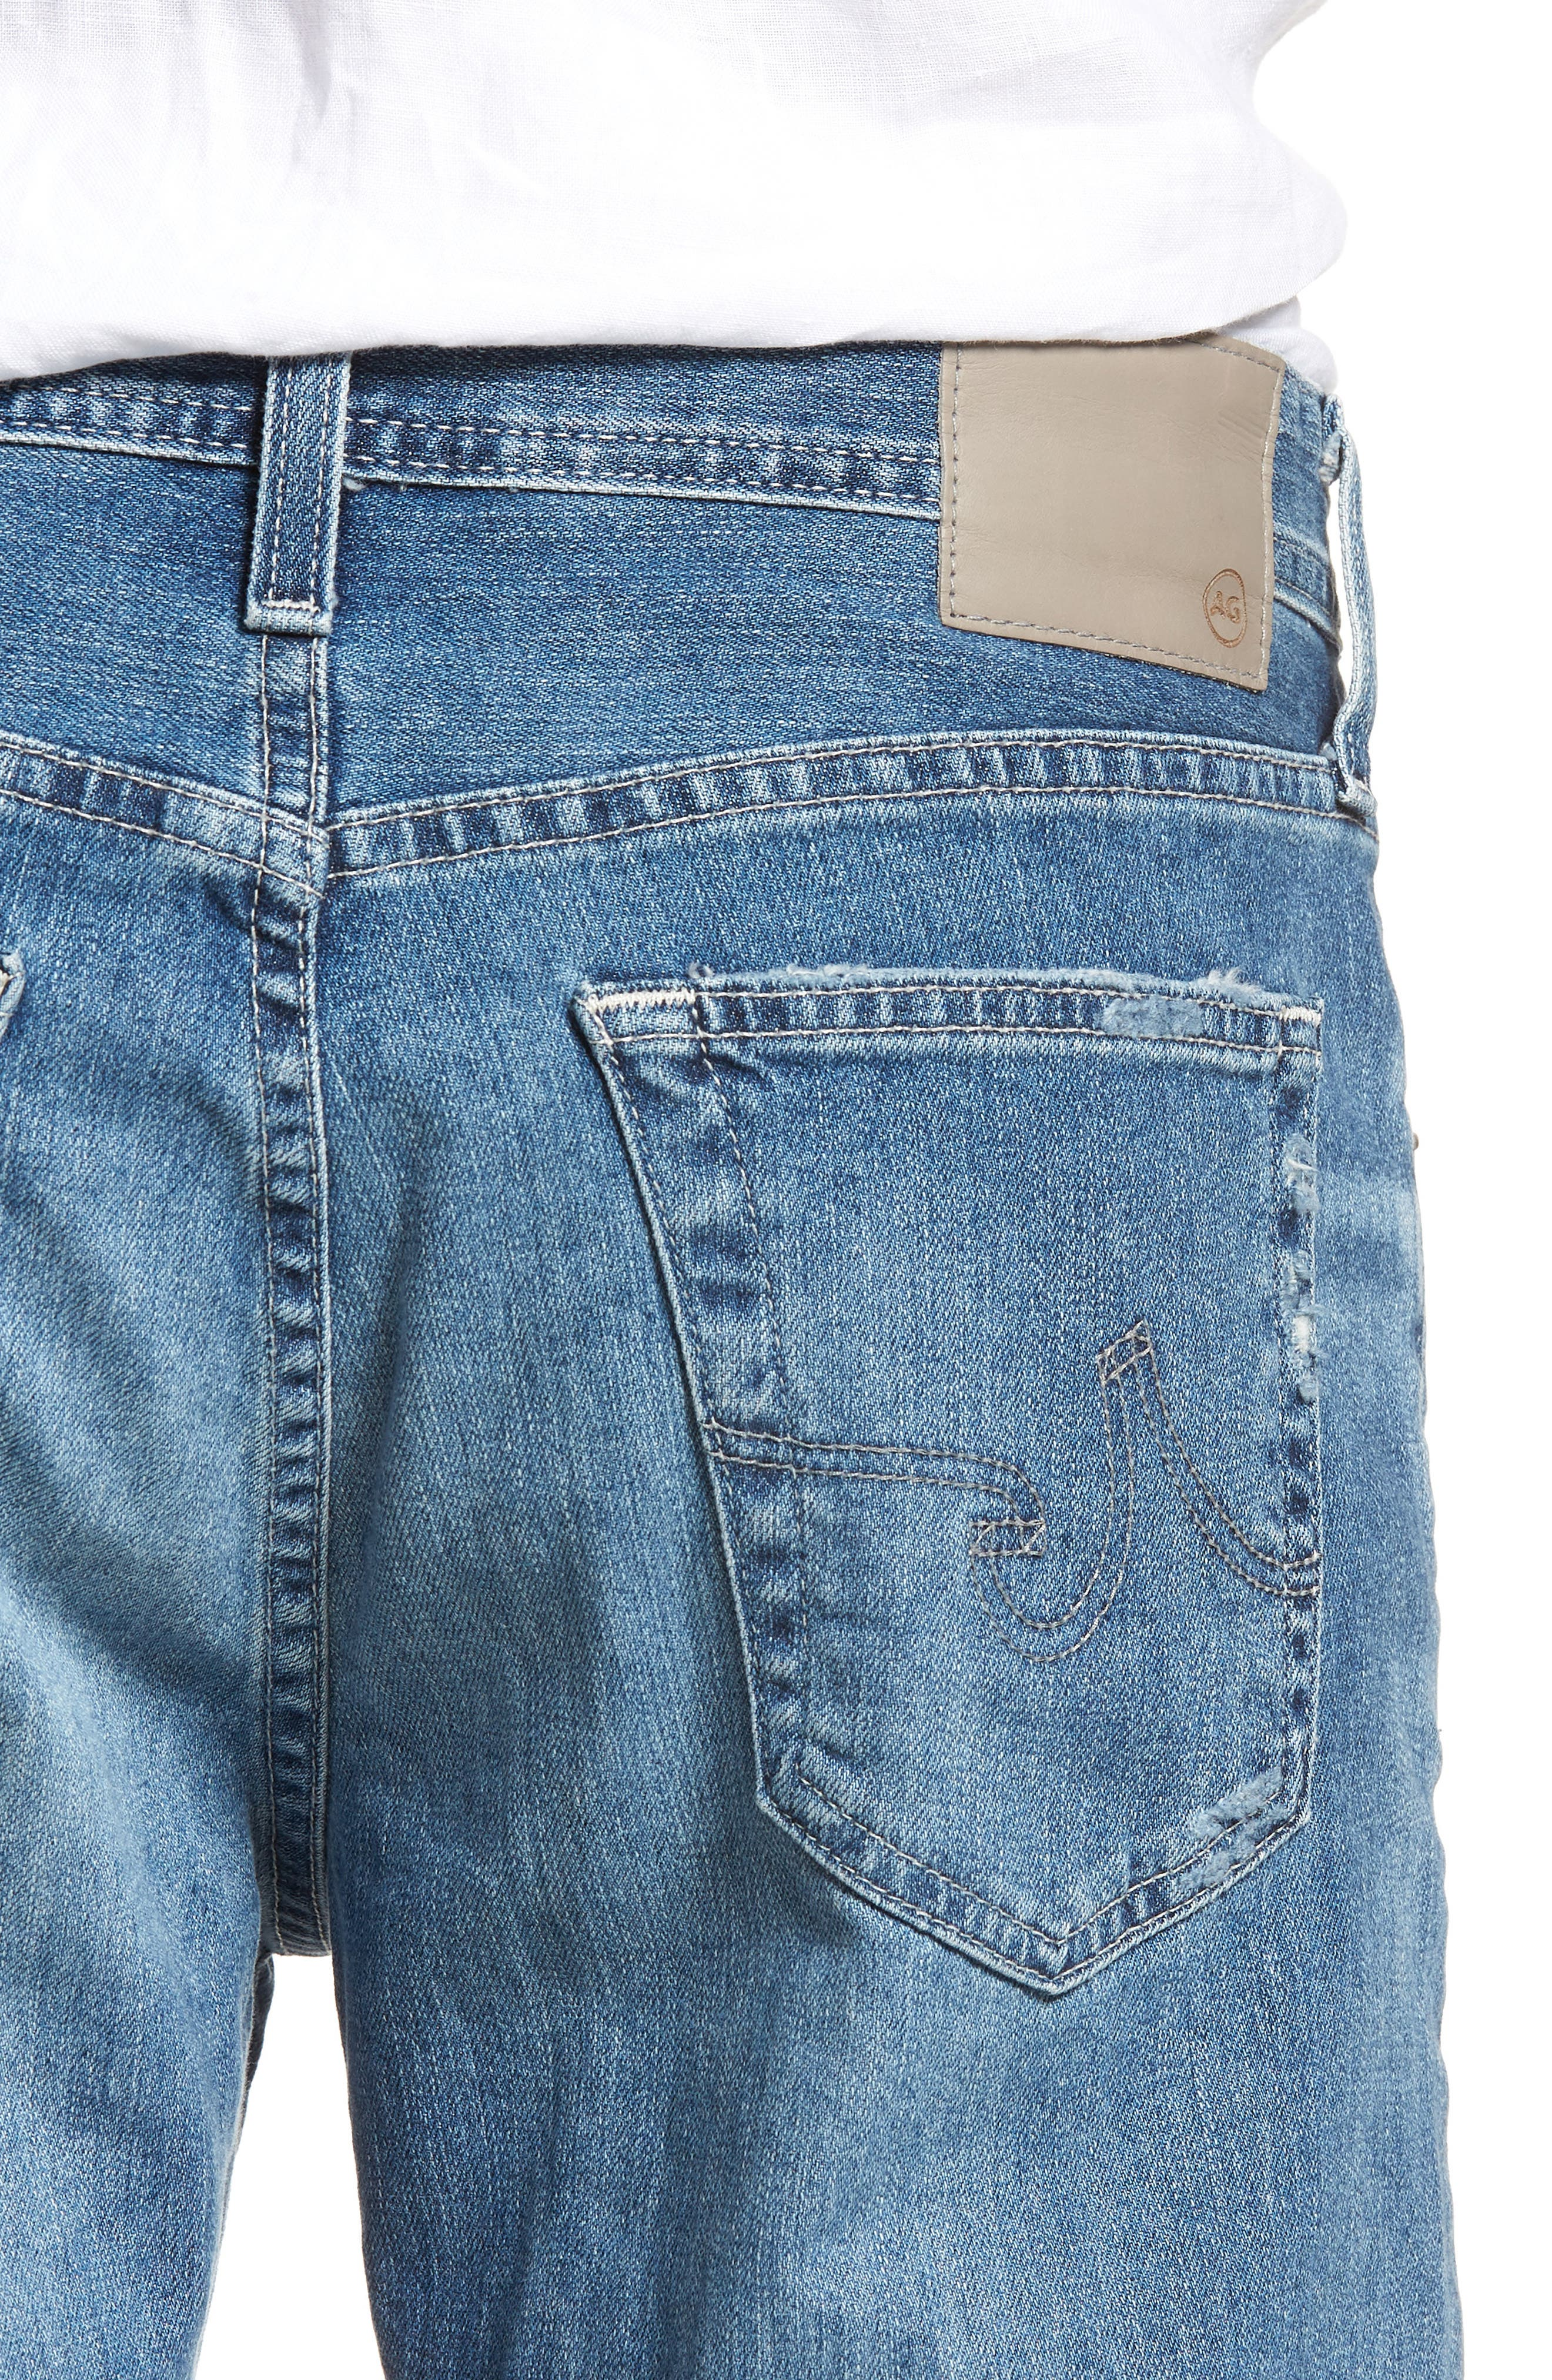 Everett Slim Straight Leg Jeans,                             Alternate thumbnail 4, color,                             15 Years Swept Up